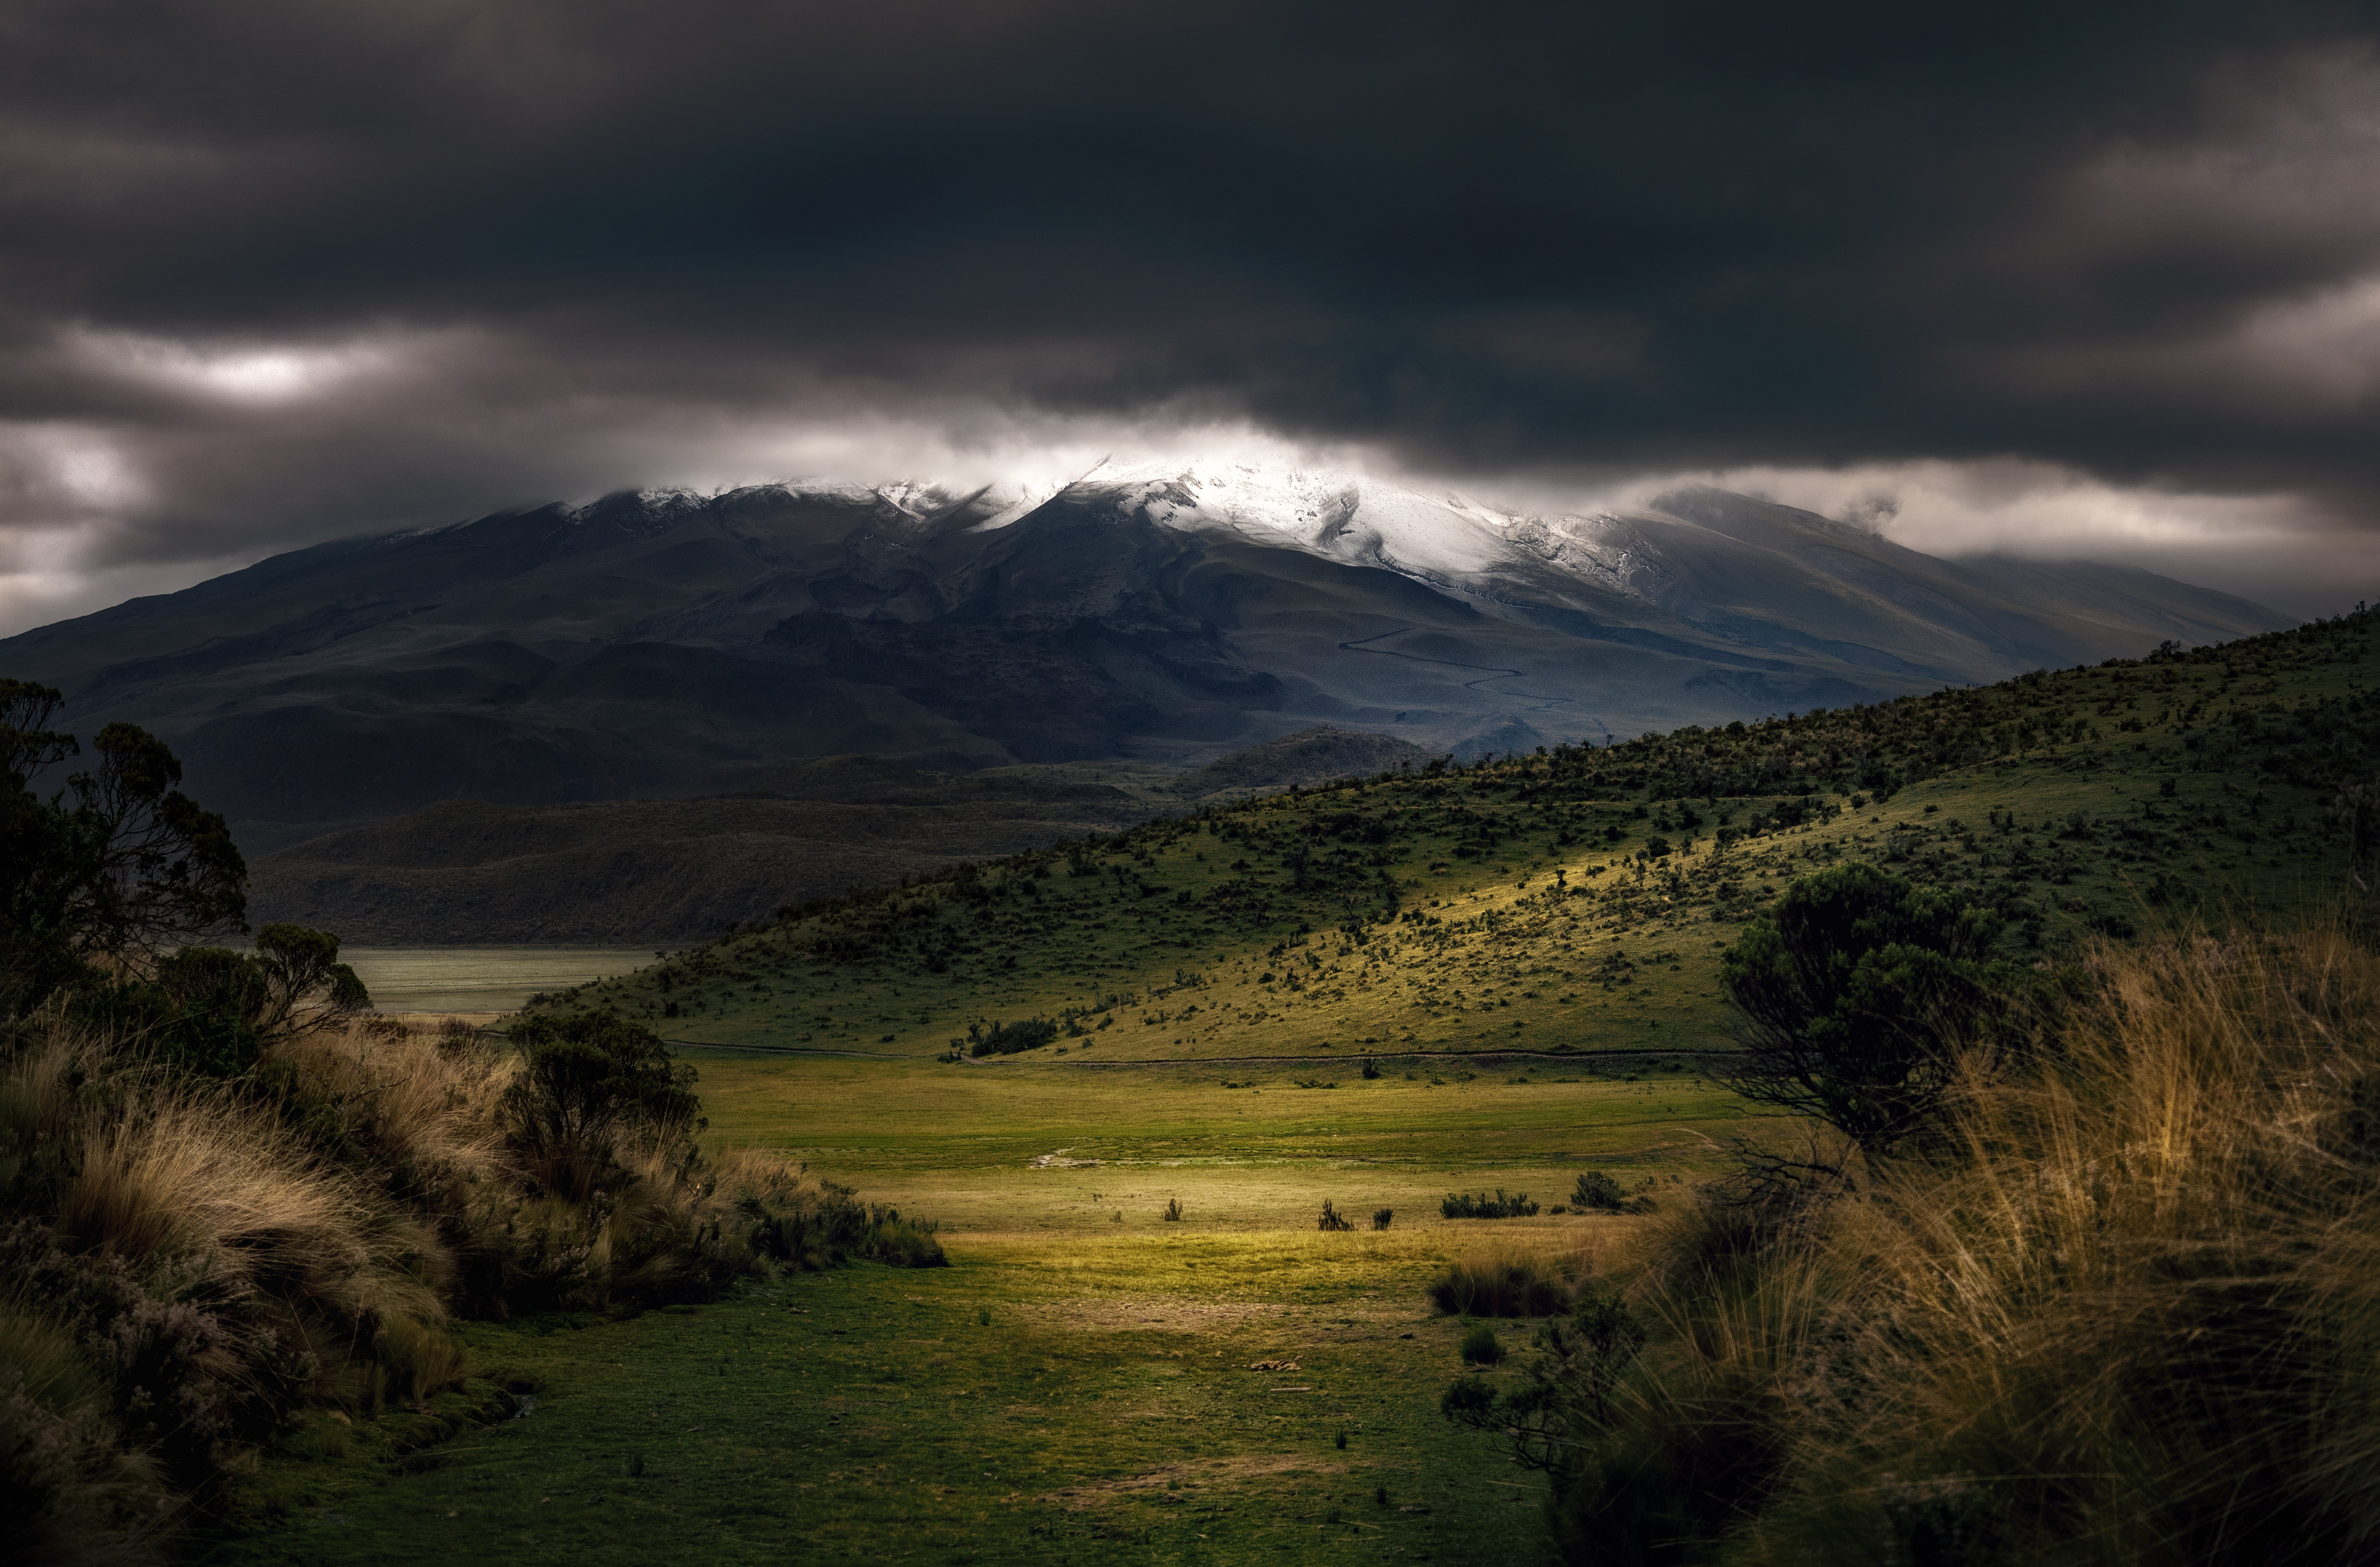 Gray clouds hover above green slopes as tall mountains emerge from the shadow on the horizon